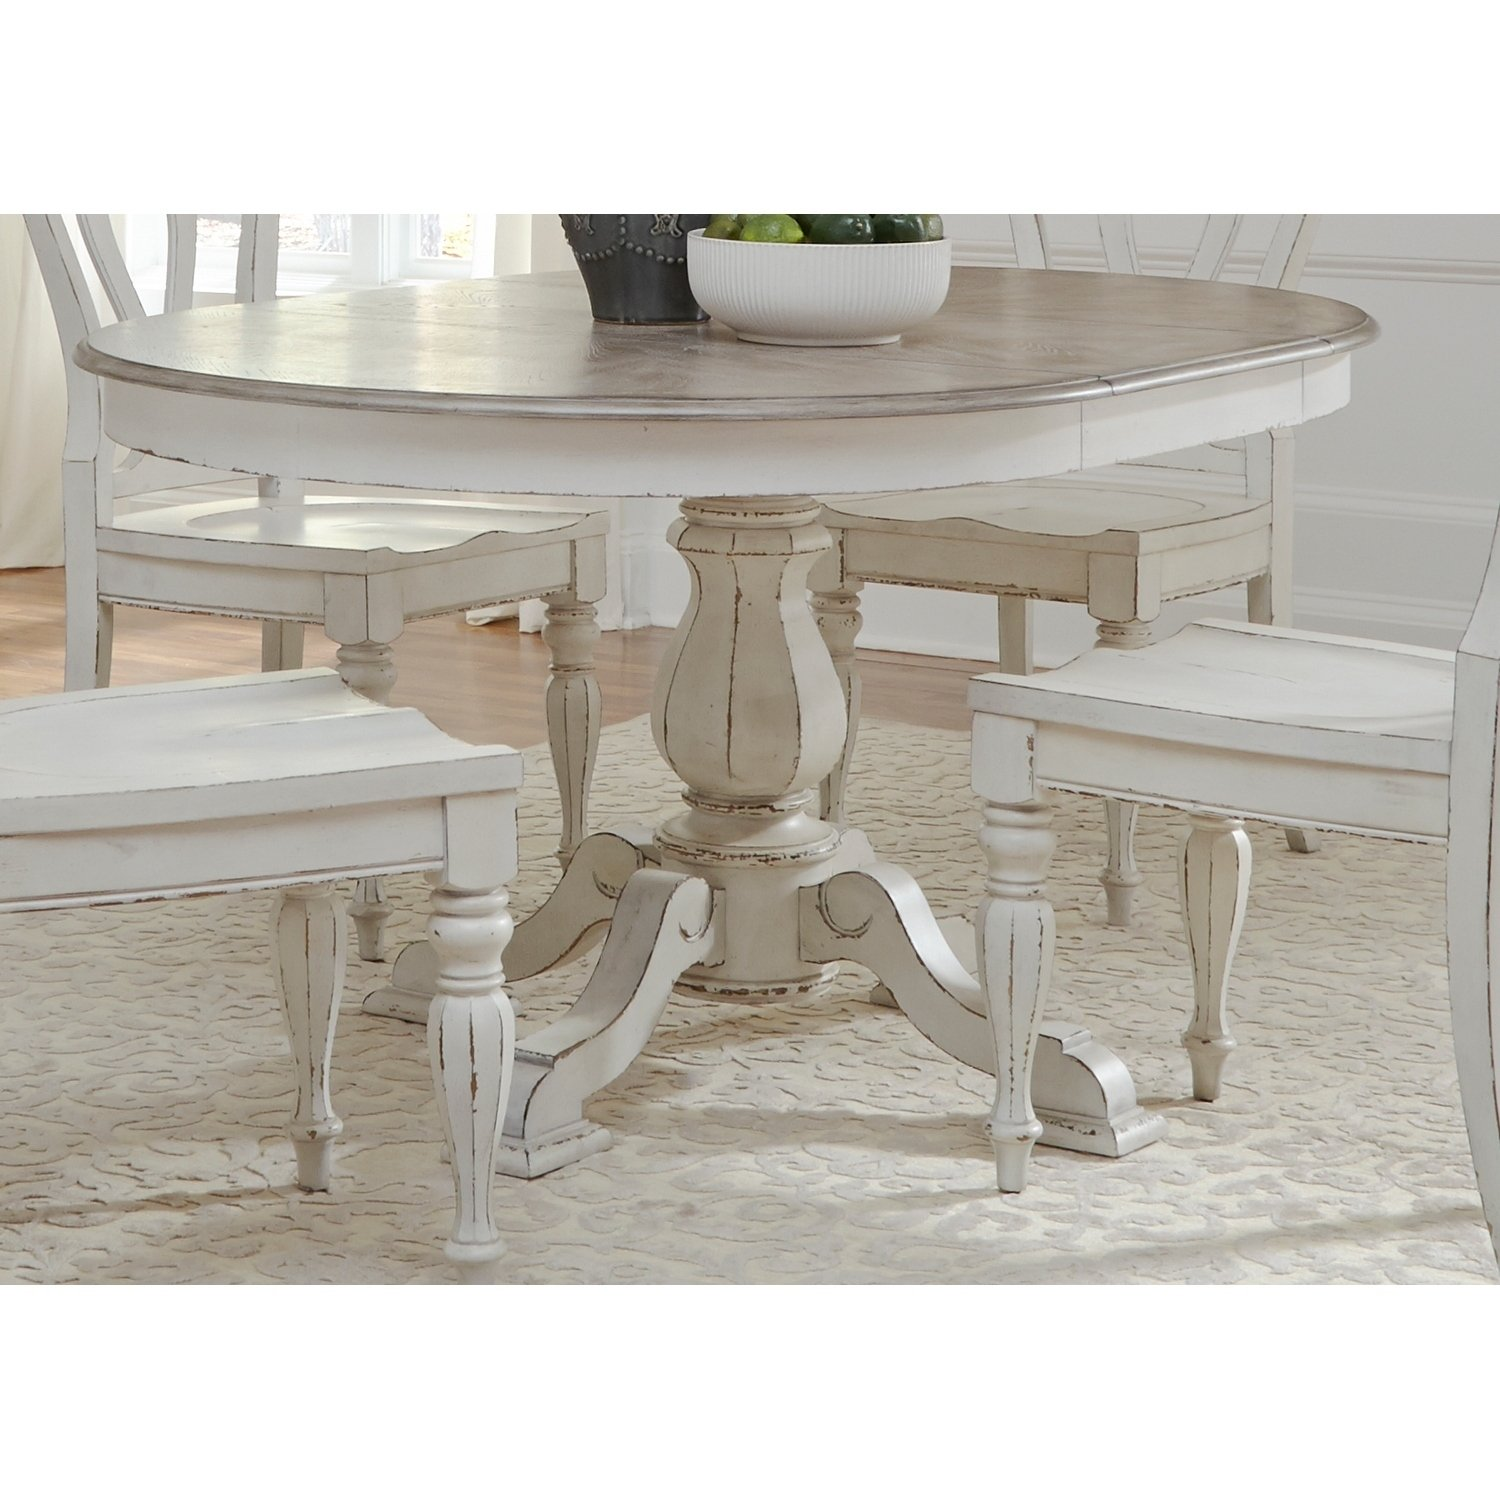 magnolia manor antique white pedestal table accent free shipping today gold and wood side lamp target reclaimed pub qvc furniture gray coffee end tables chairs toronto home